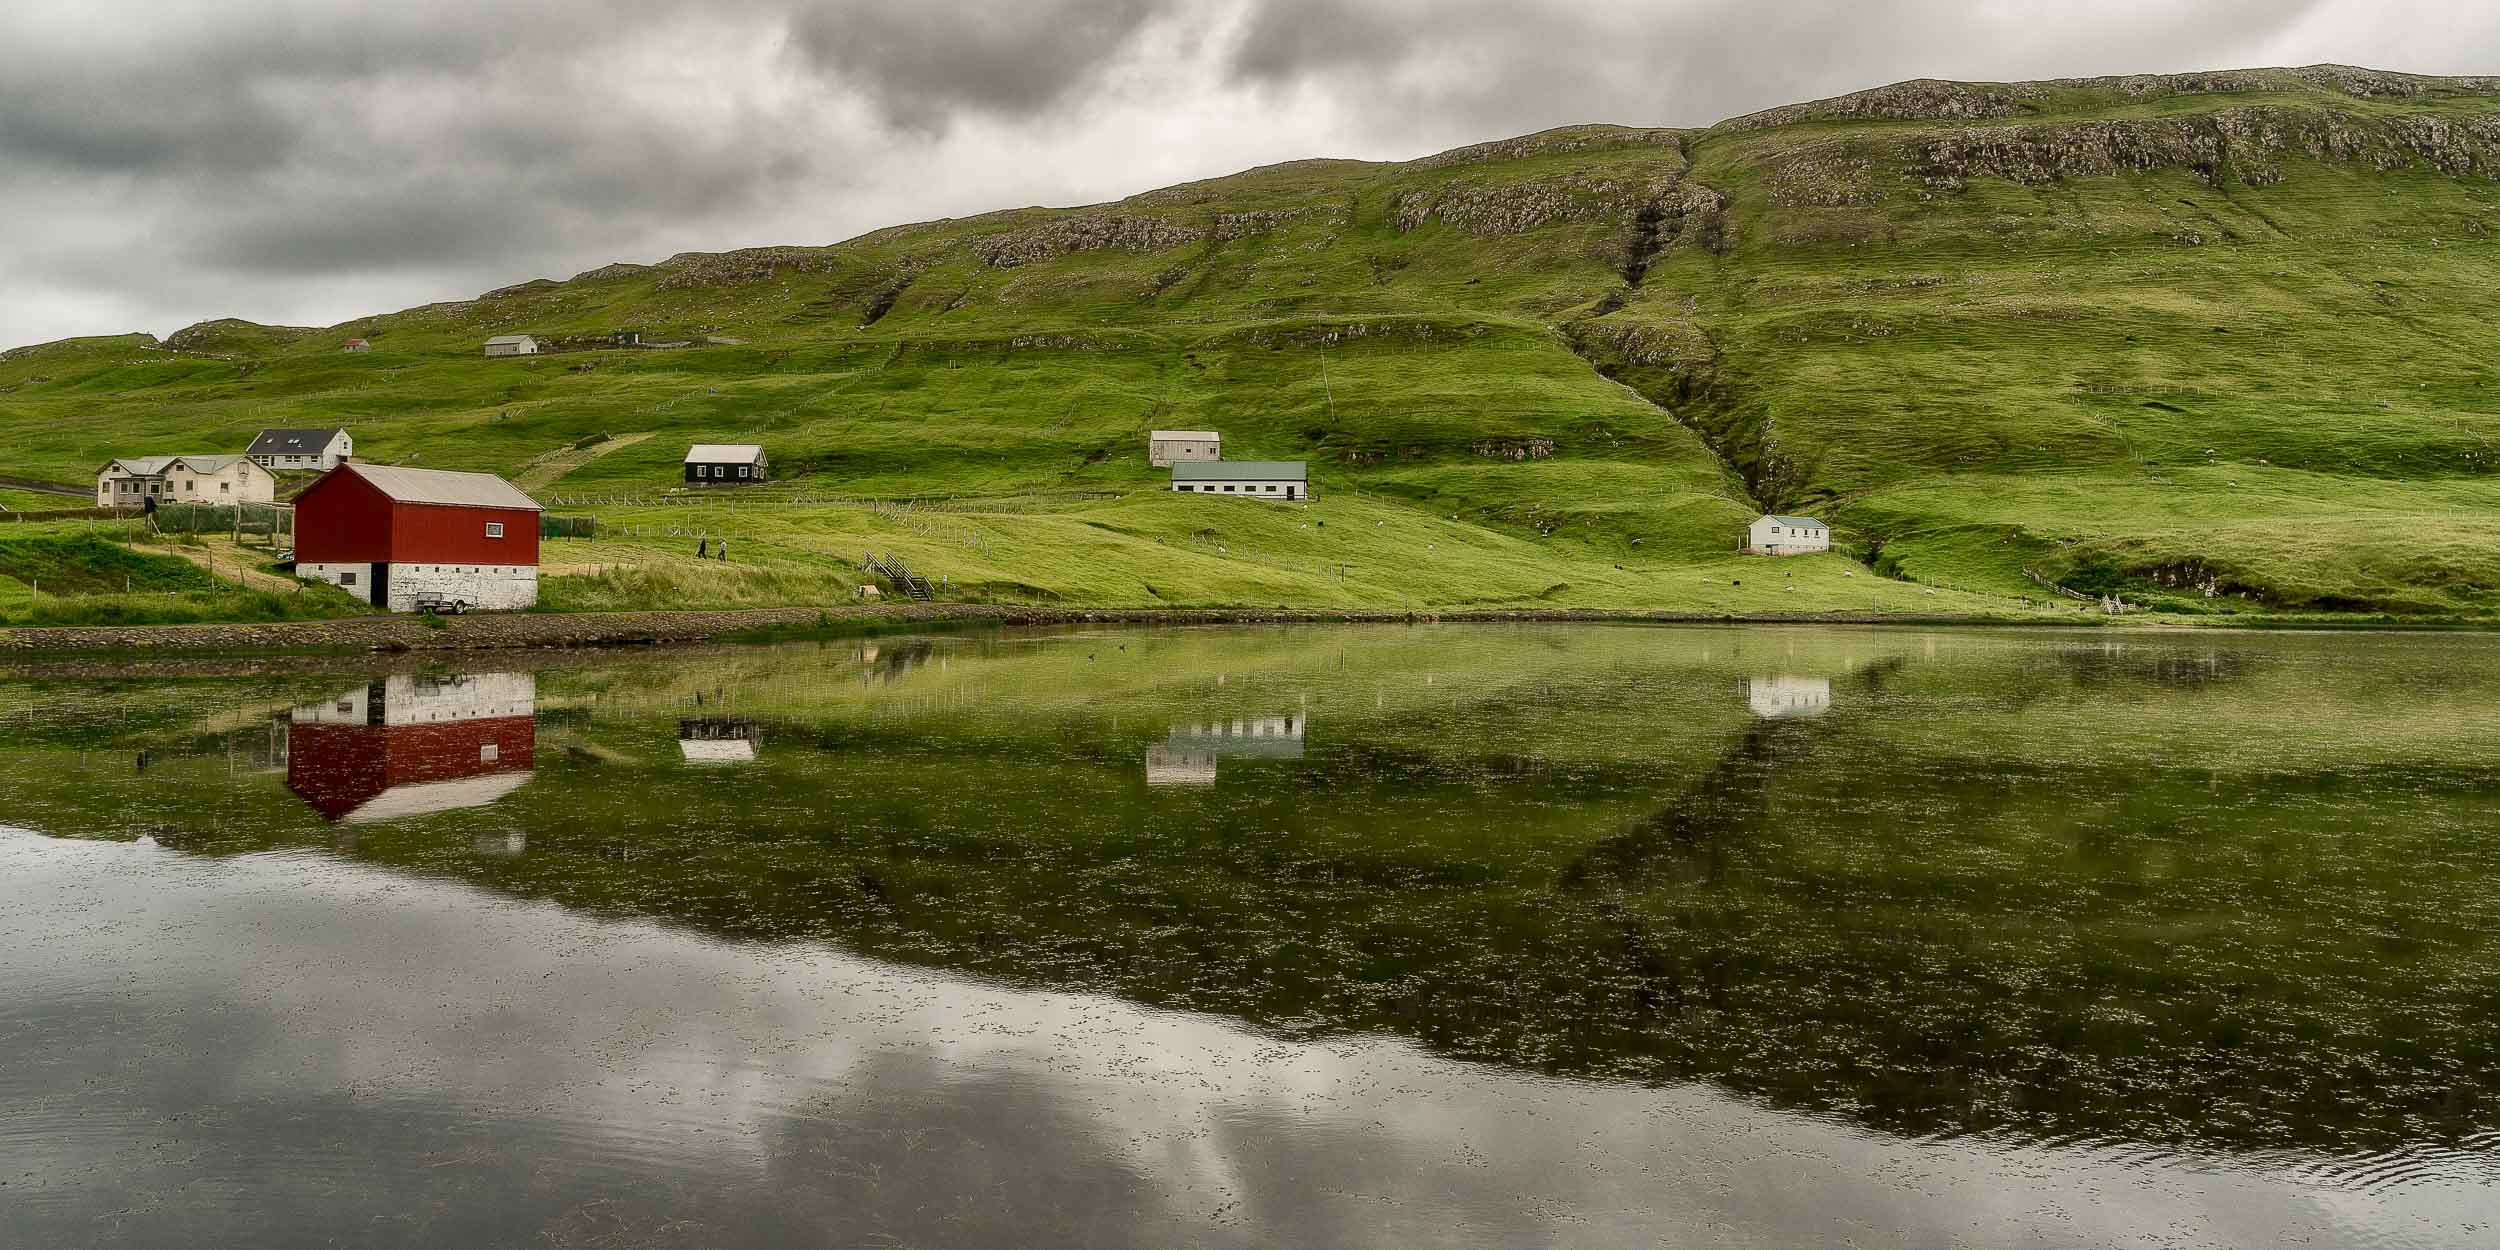 A serene scene of    farm houses    around the edges of a    lake    on the island of    Suduroy    in the    Faroe Islands   .